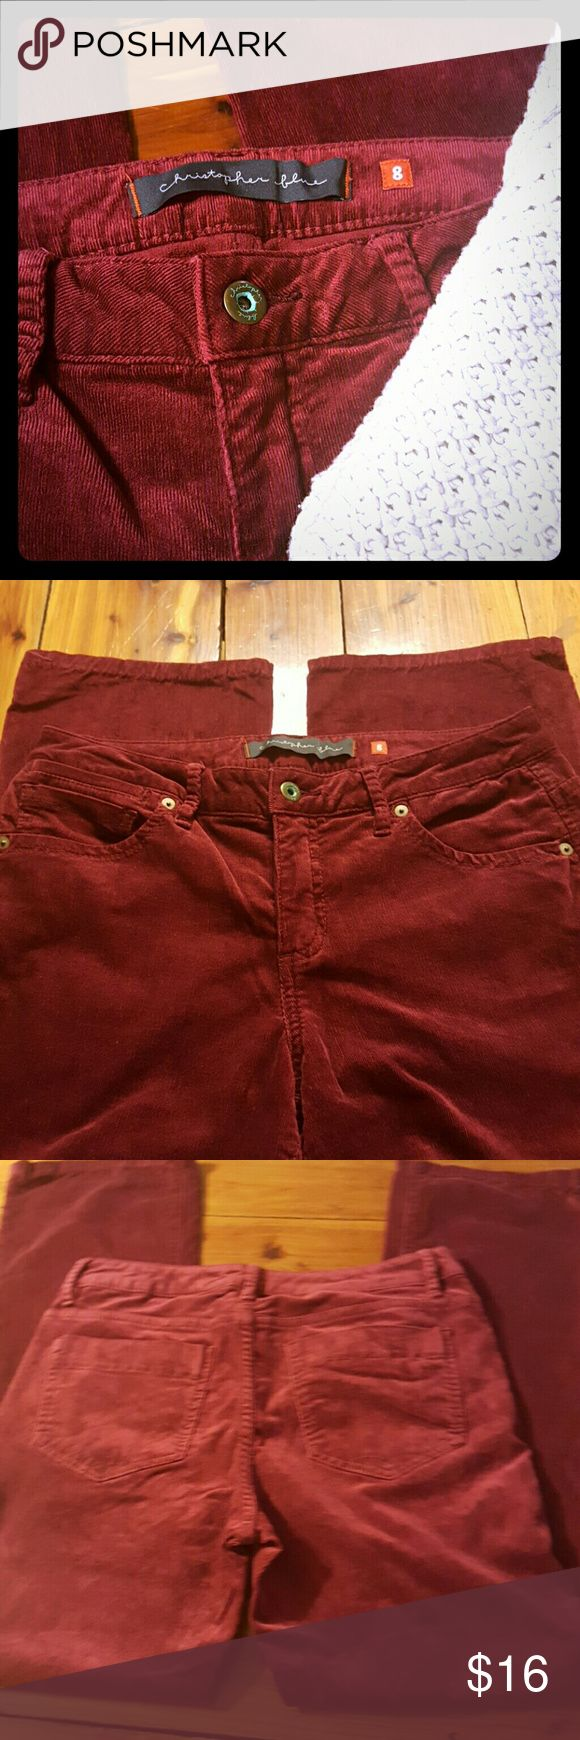 """Christopher Blue burgundy corduroy pants. Sophisticated corduroy pants 29"""" inseam.  Measures 8"""" across at ankle (laying flat).  Waist 16"""" across (laying flat).  Great shape!  15% OFF BUNDLES 3+!!  Open to offers! Christopher Blue Pants"""